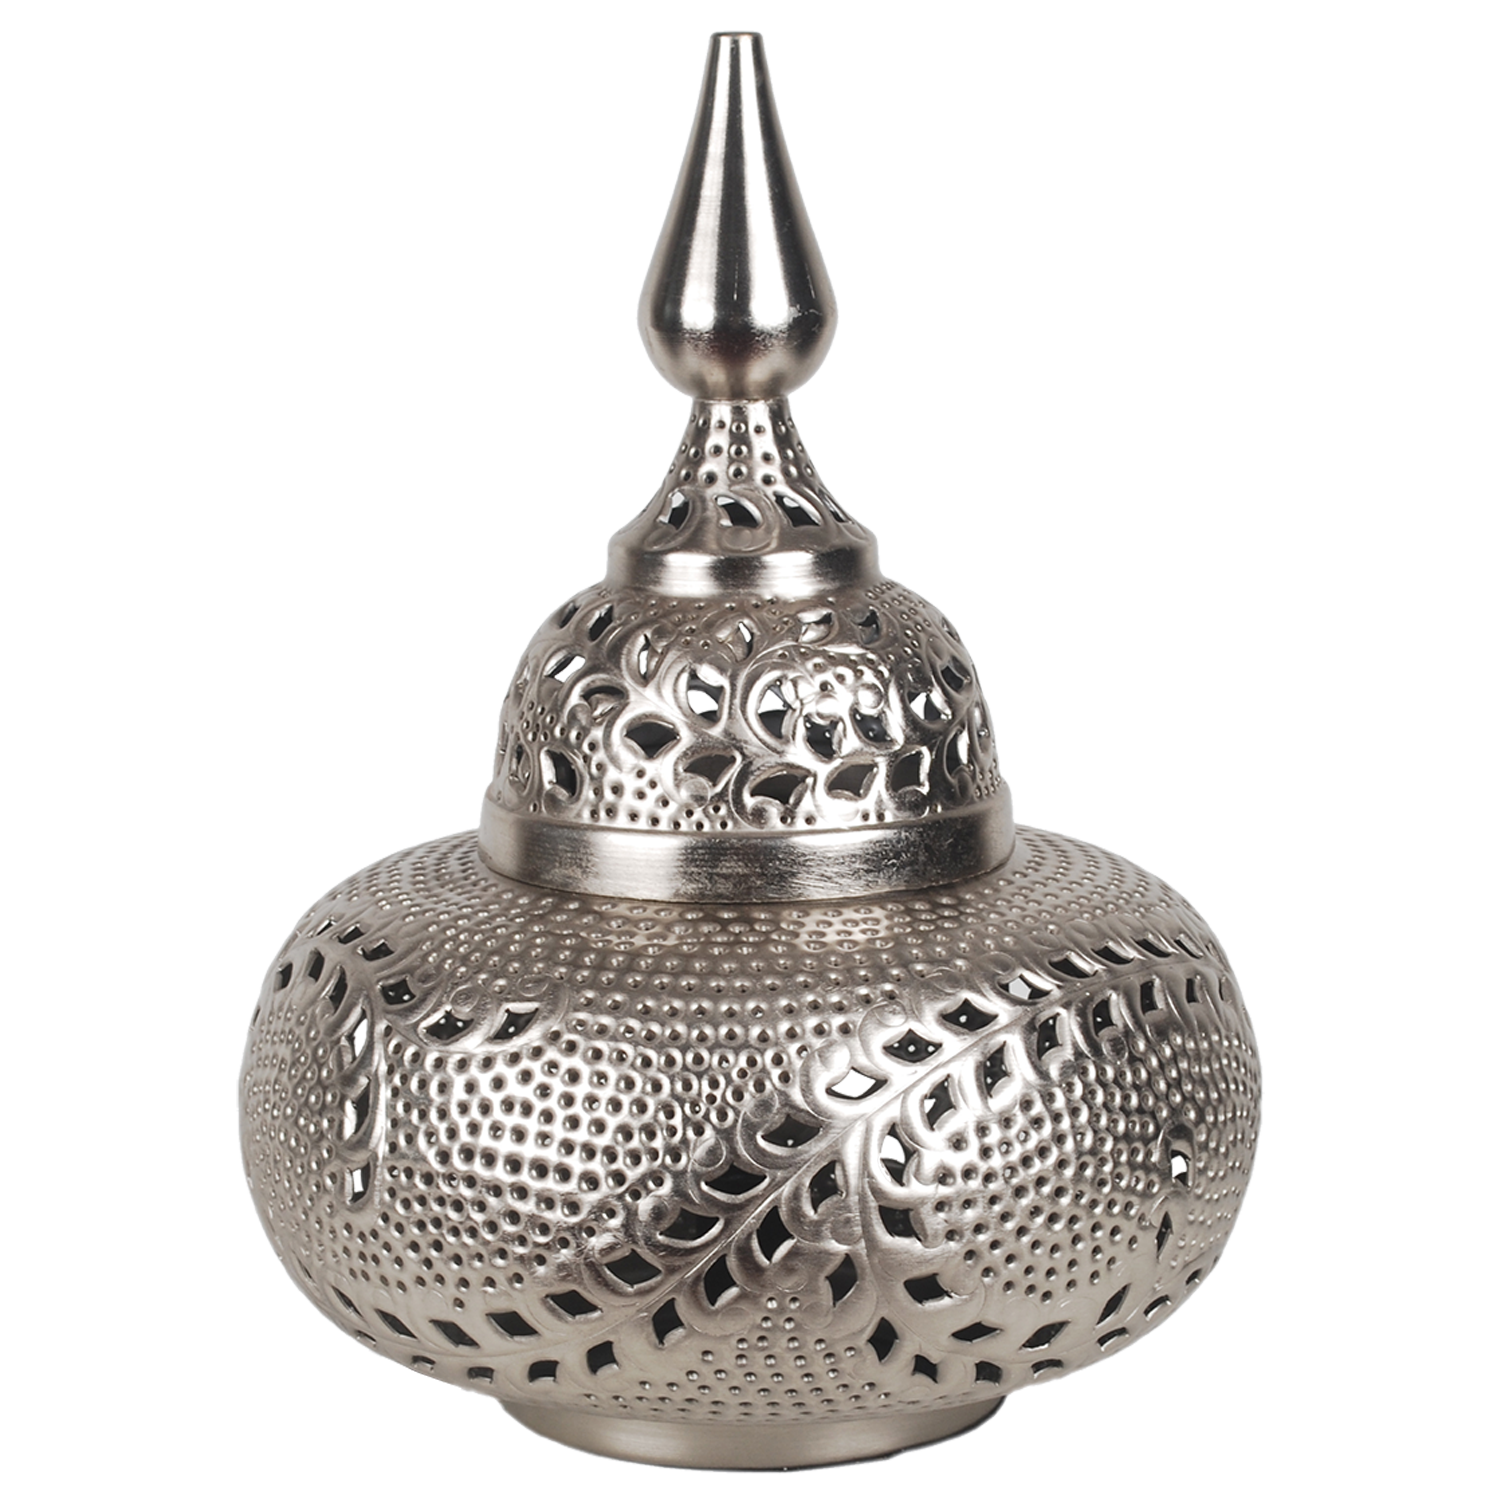 Tafellamp marrakech groot collectione casa bella for Collectione lampen